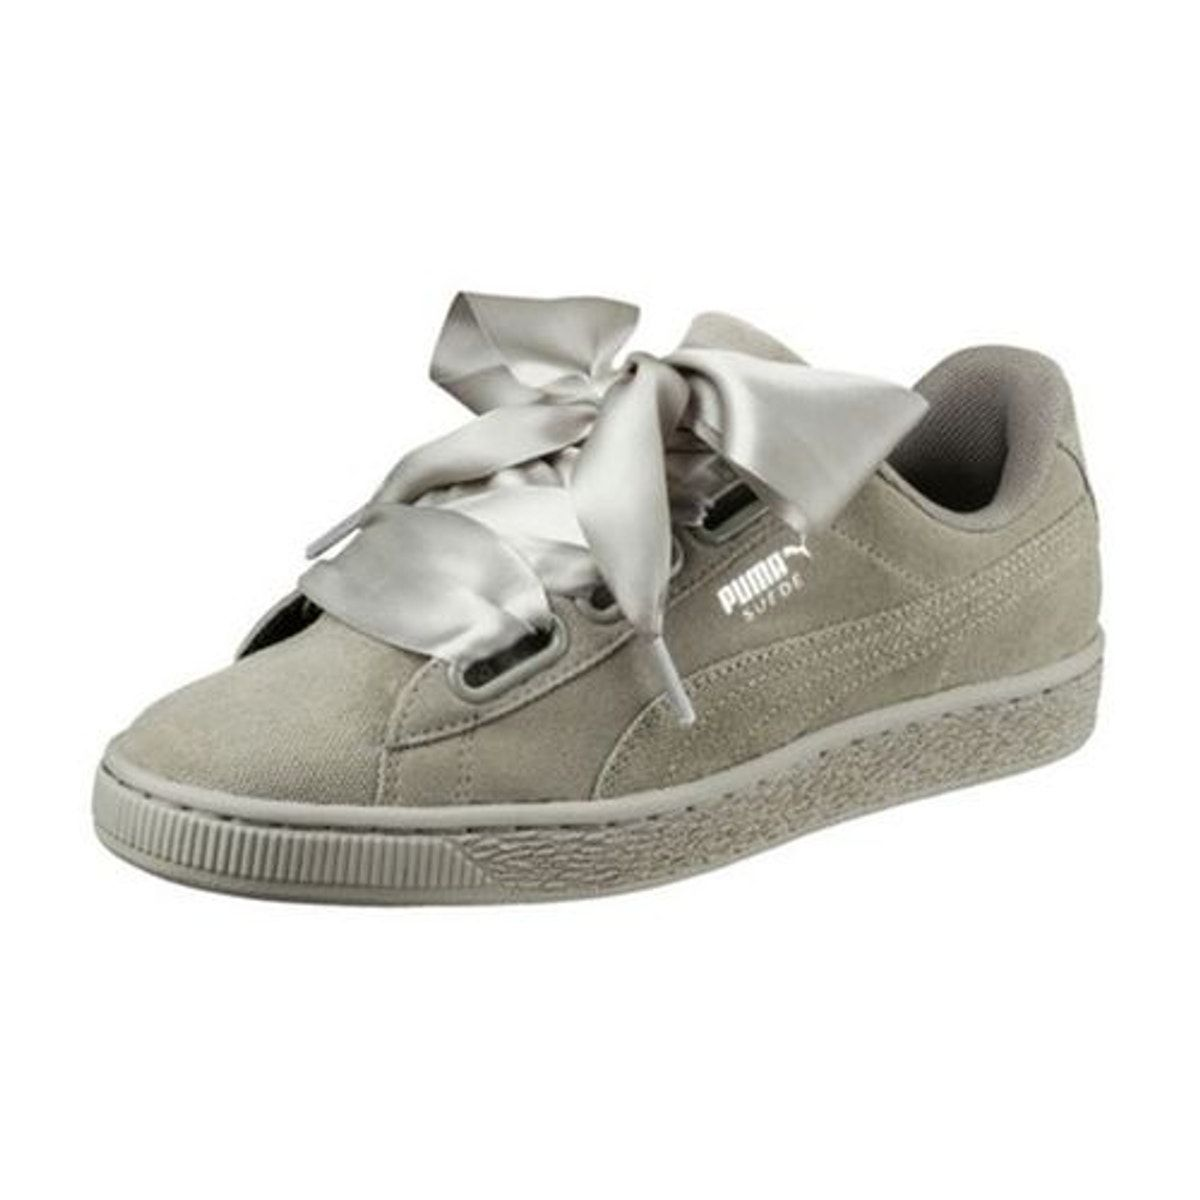 magasin en ligne 0a960 5f0b7 Chaussures cuir suede lacets canvas HEART PEBBLE | Products ...